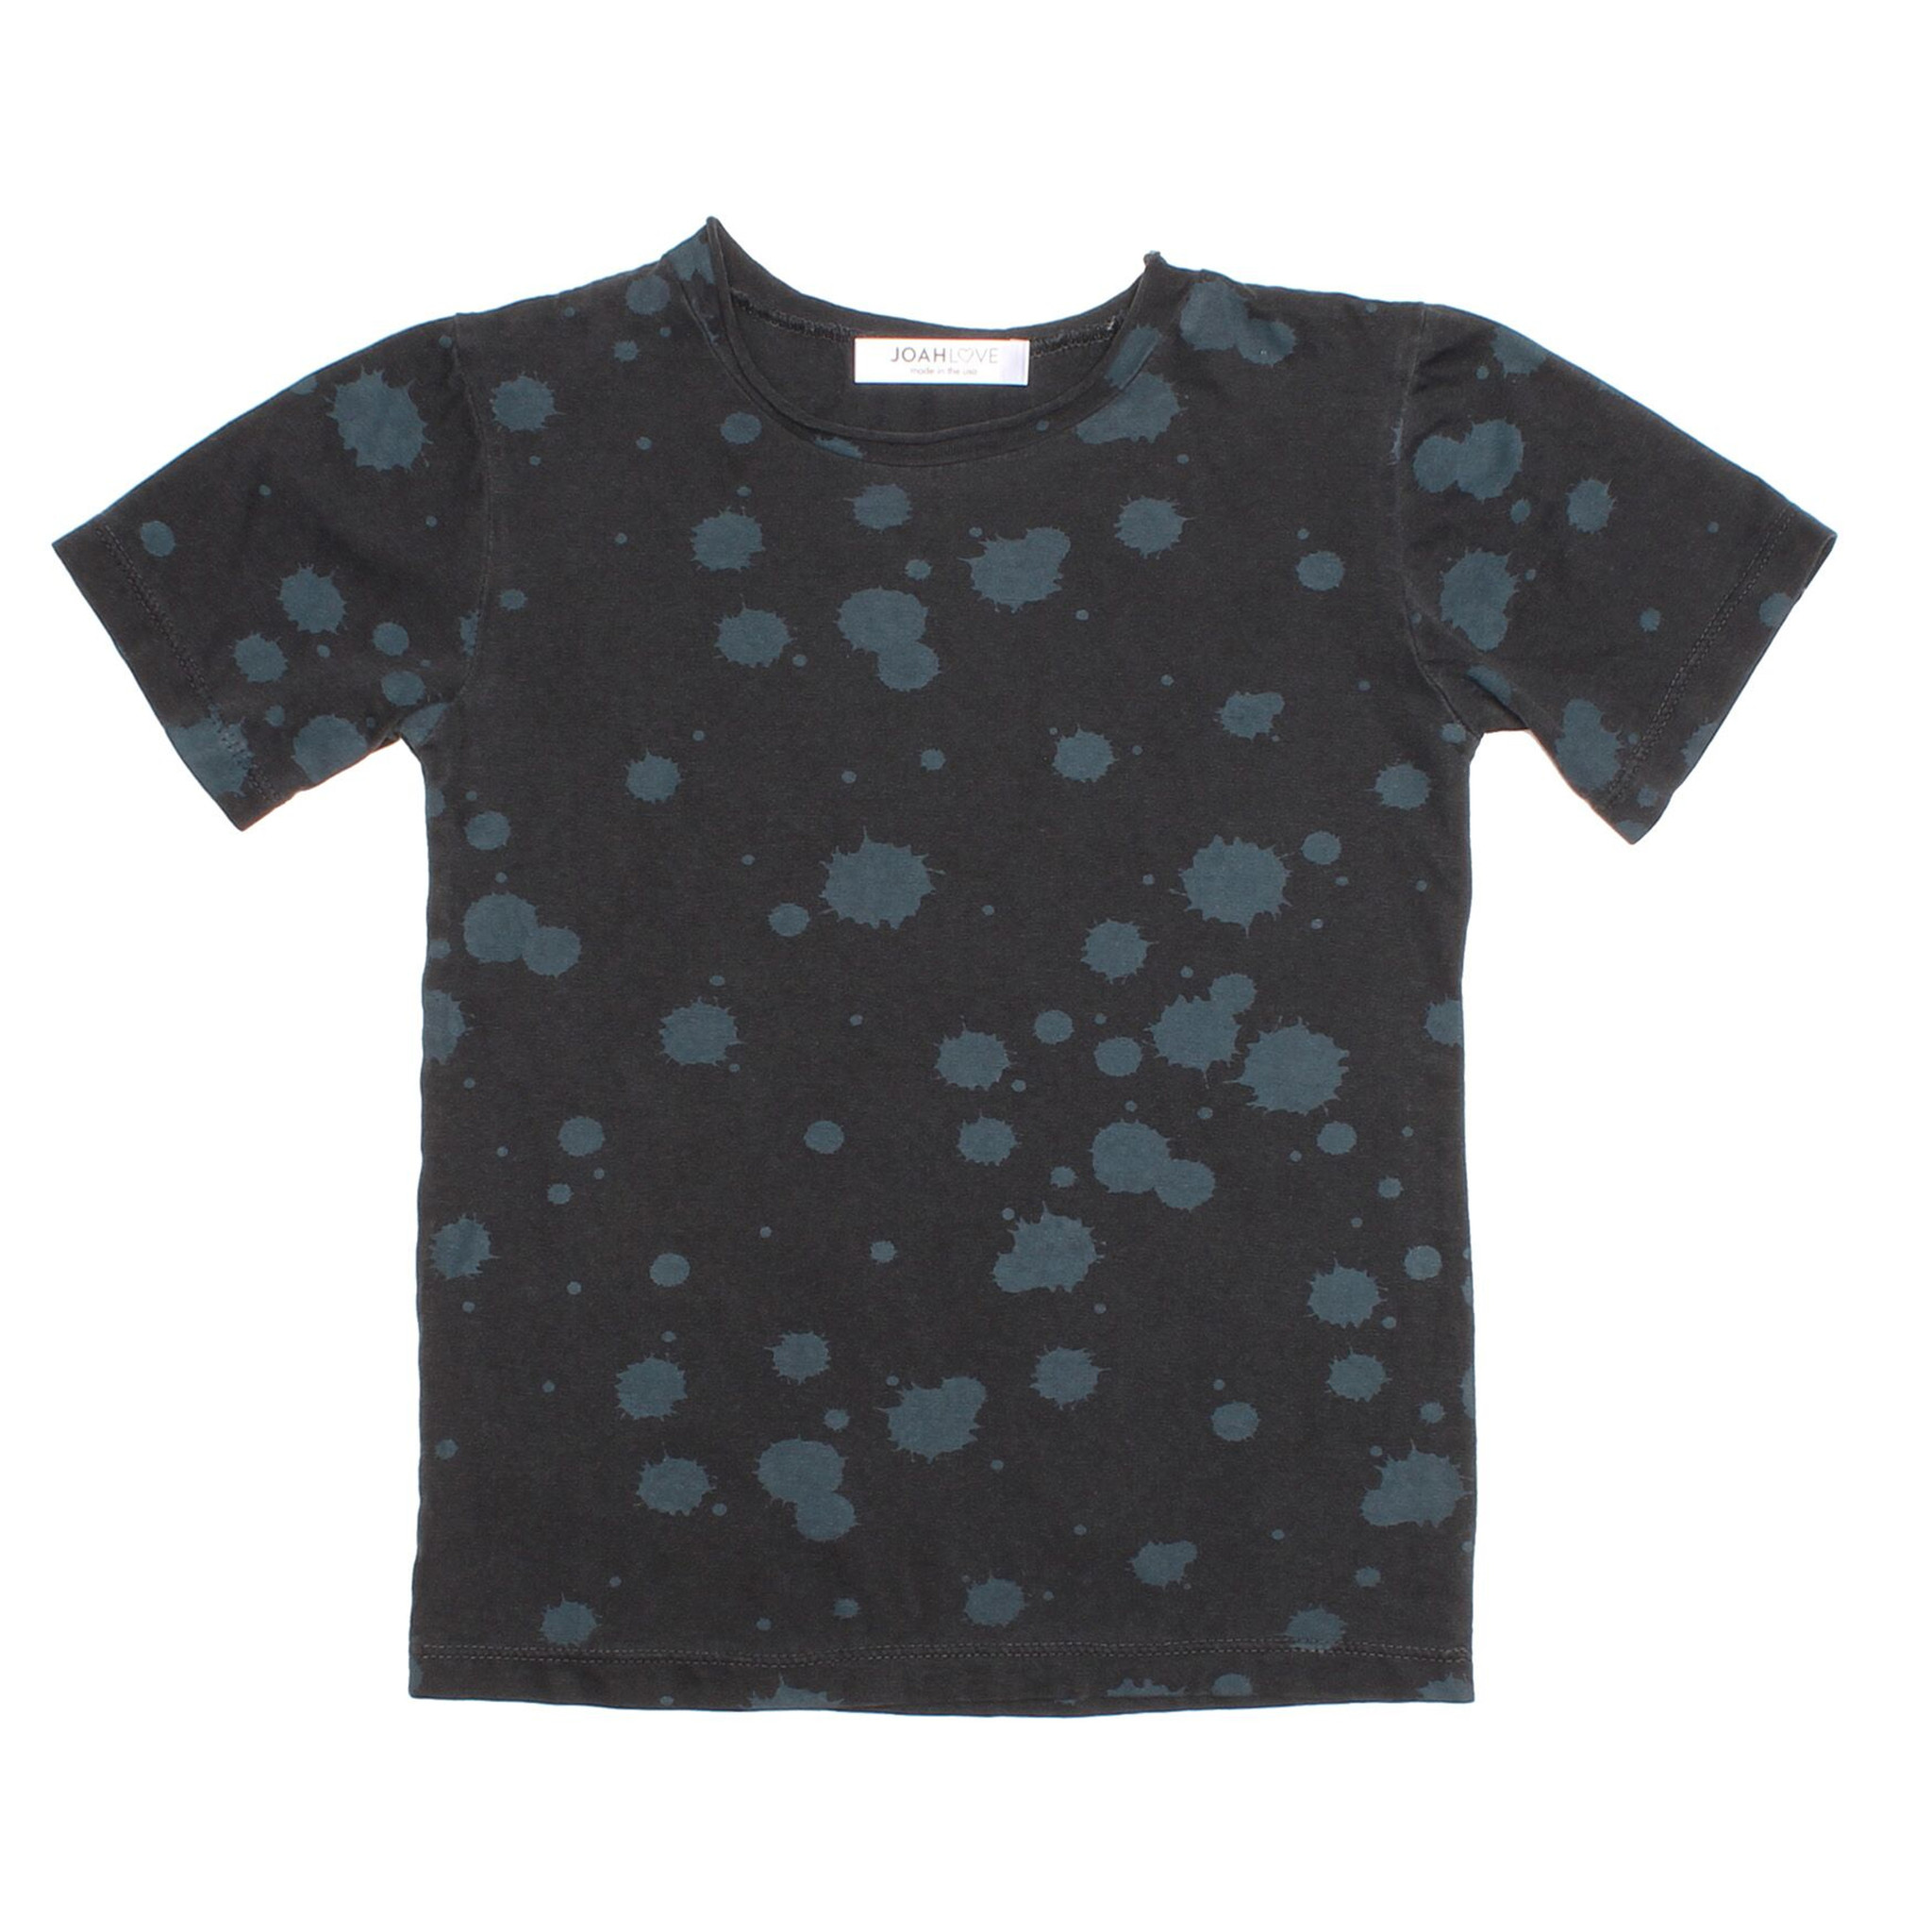 Joah Love Black Splatter Tee